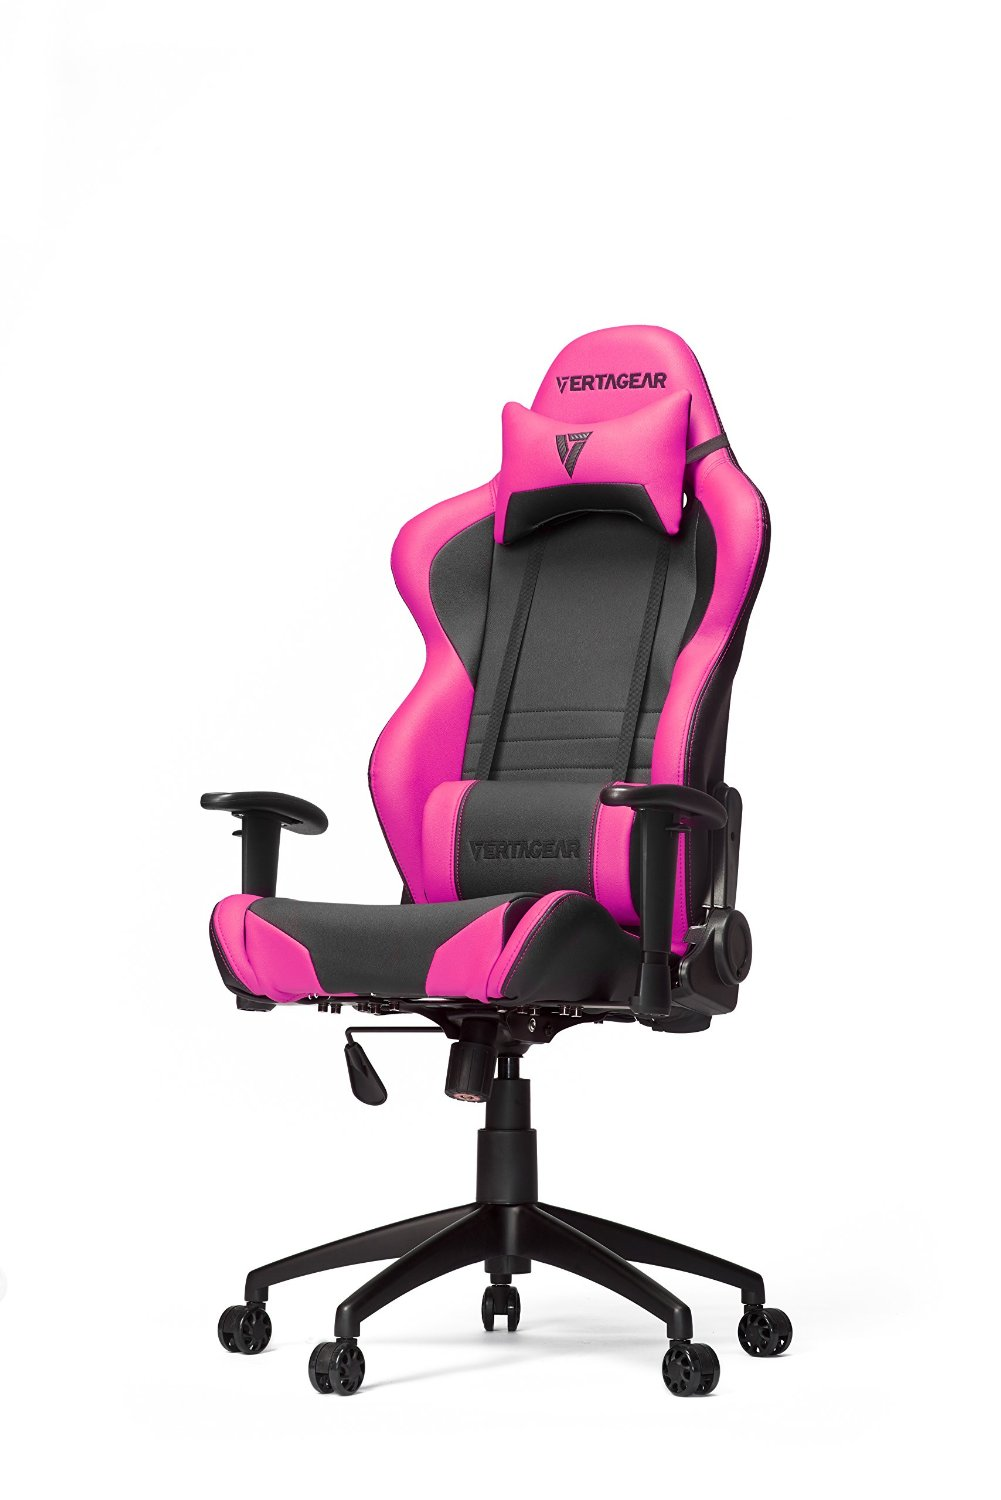 lcs gaming chair white lounge chairs best for league of legends lol buying guide review vertagear pink upright